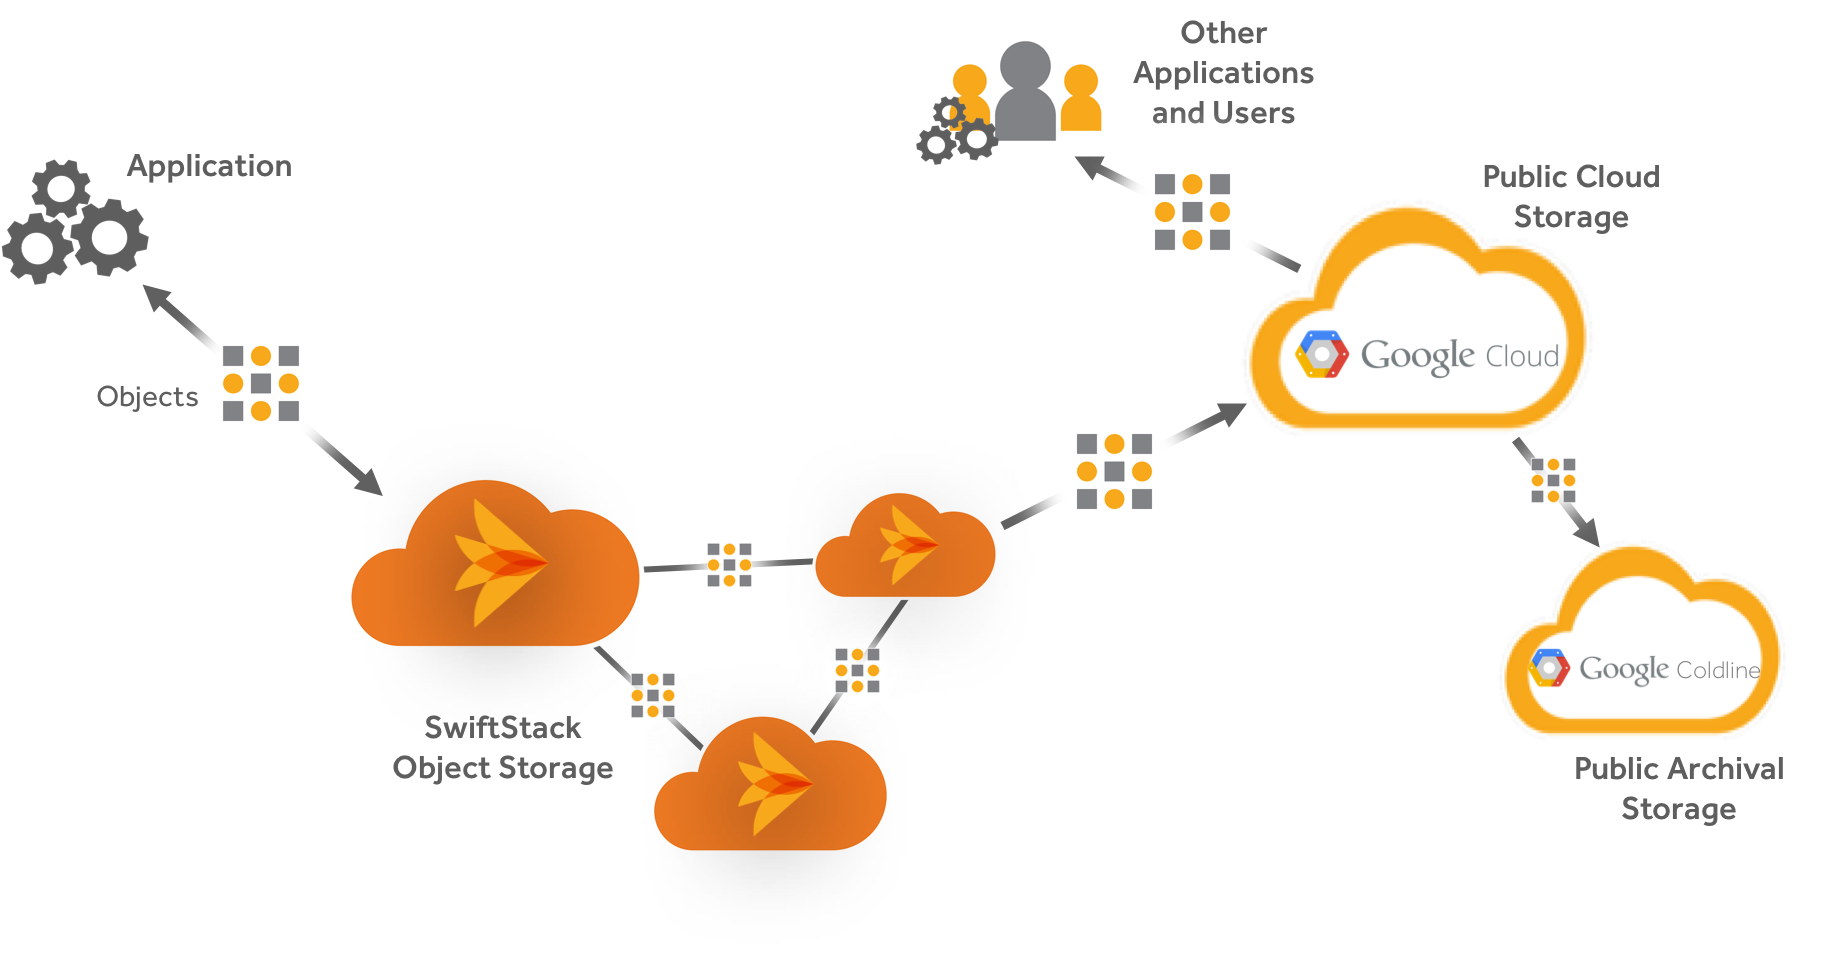 Architecture of SwiftStack integrated with Cloud Storage